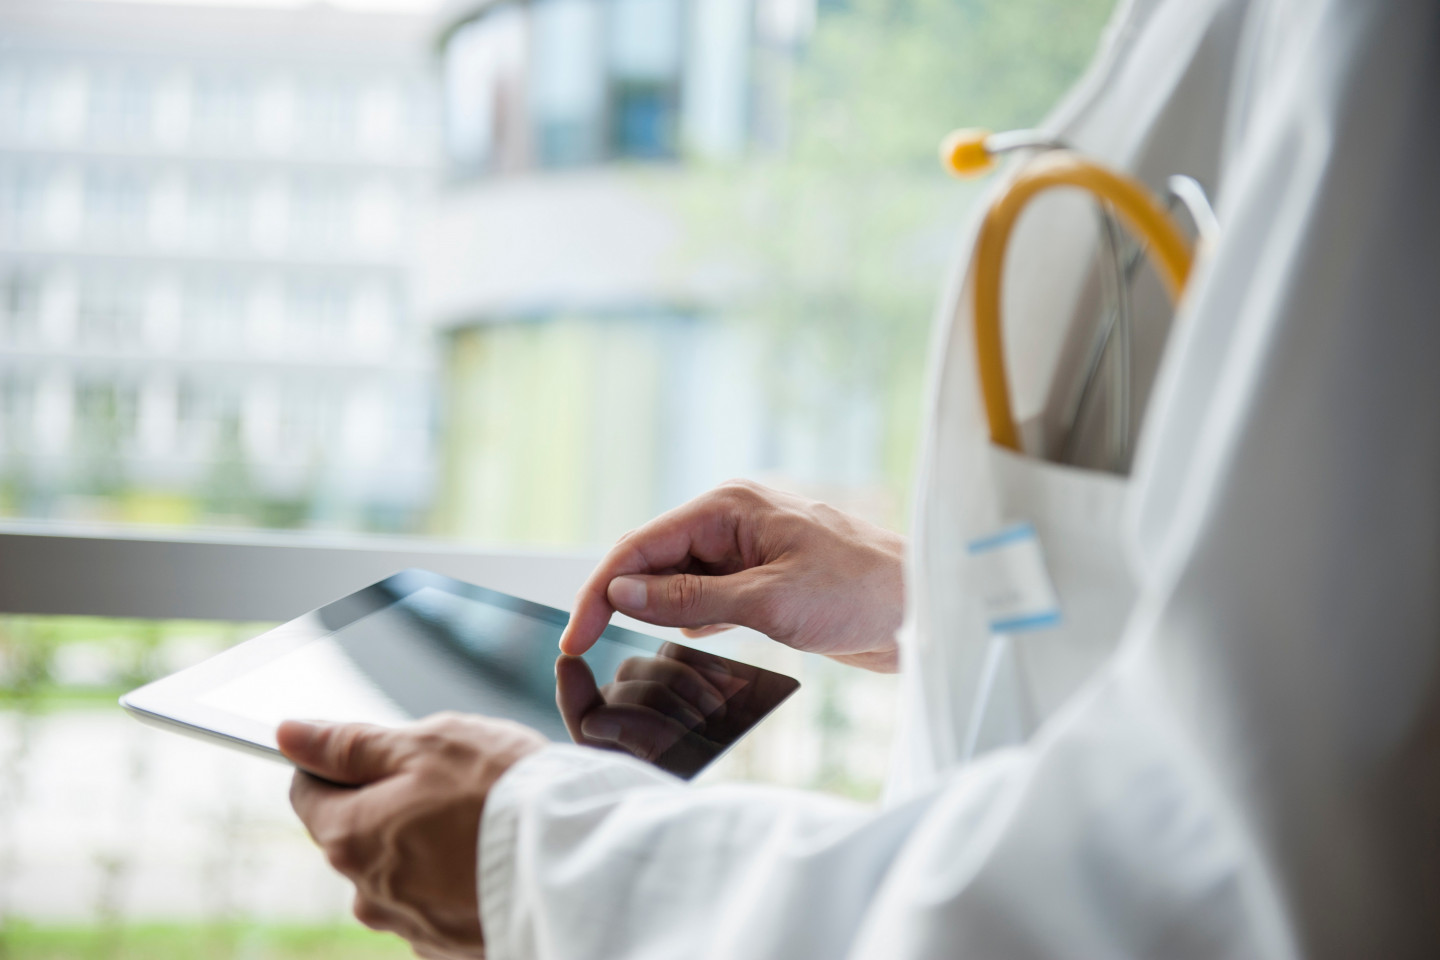 A doctor uses a tablet.